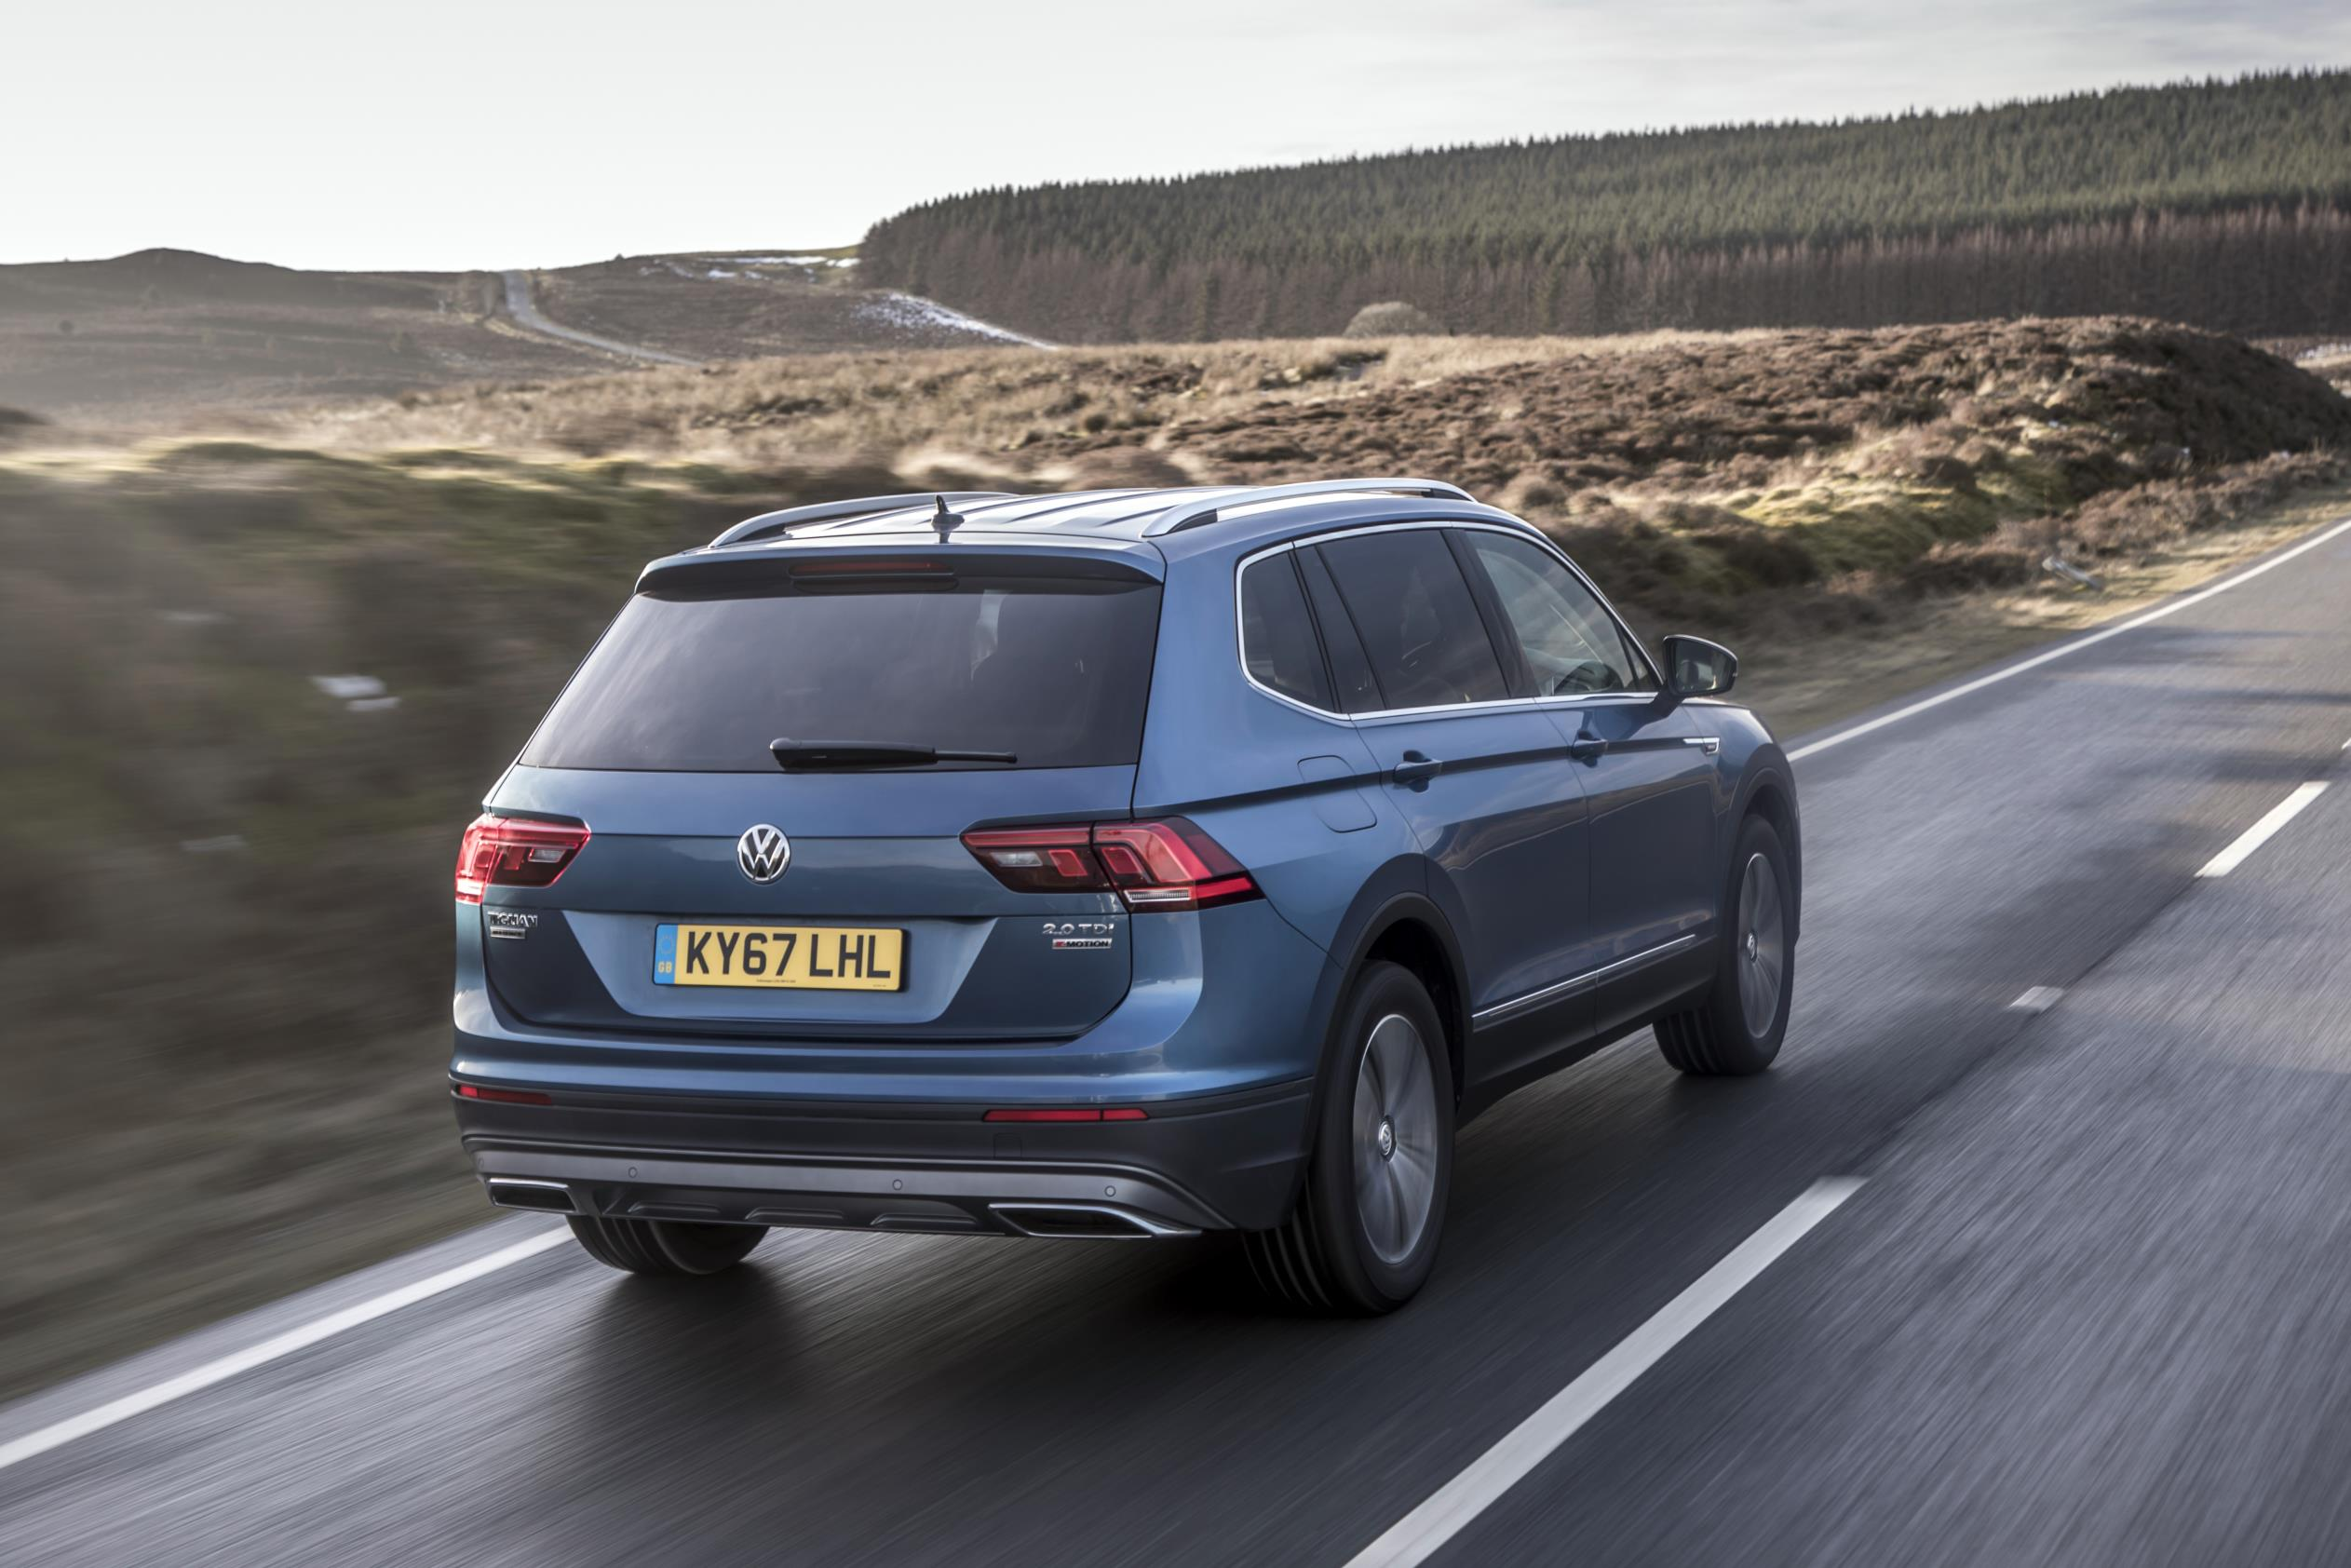 2018 volkswagen tiguan allspace uk pricing and details announced autoevolution. Black Bedroom Furniture Sets. Home Design Ideas